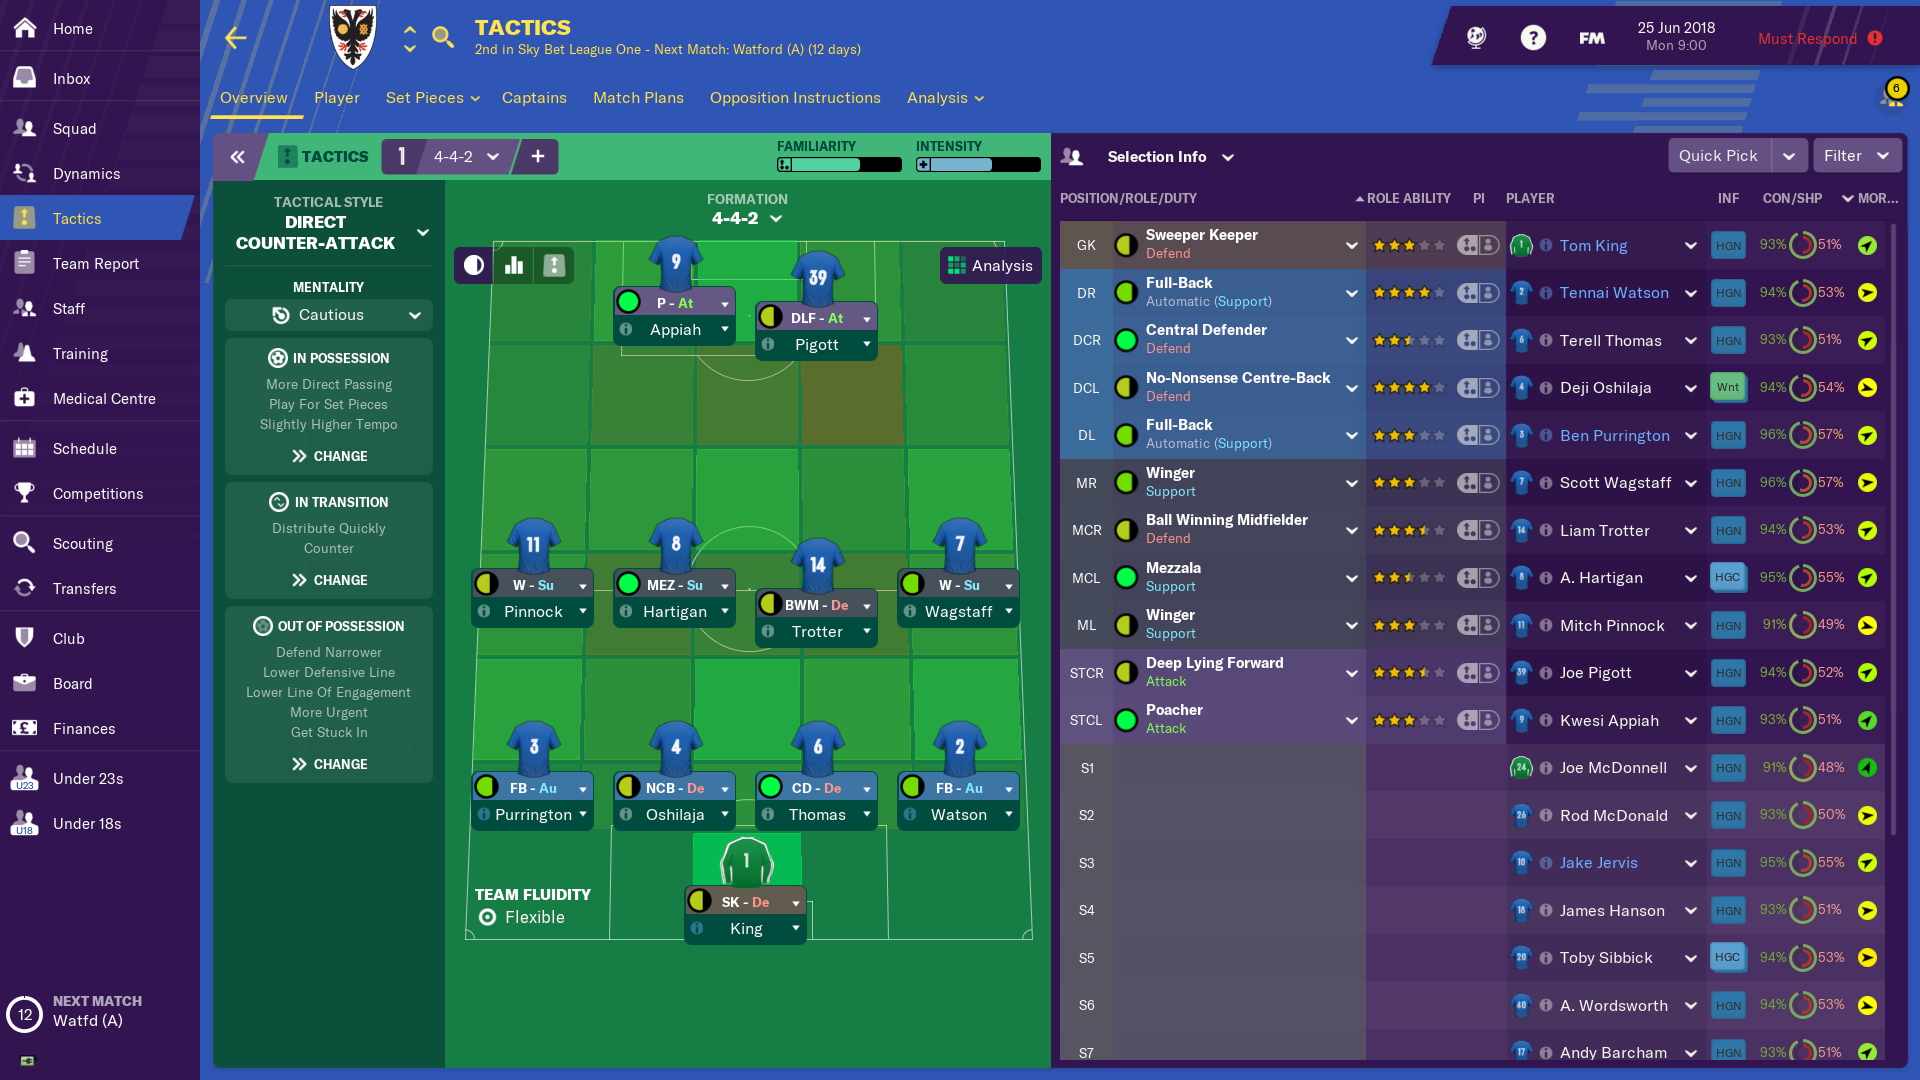 football manager 2019 tactics guide